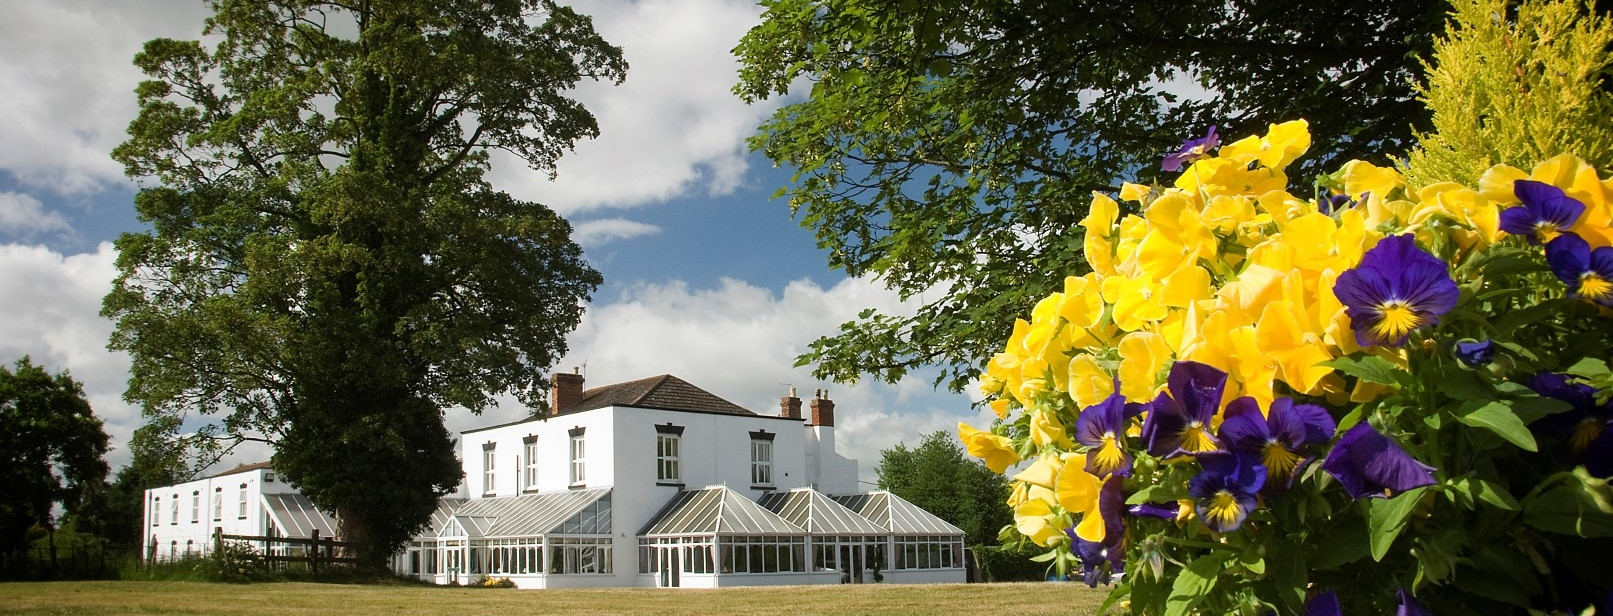 Weddings, Wedding Venues. Parties, Functions at the Wroxeter Hotel